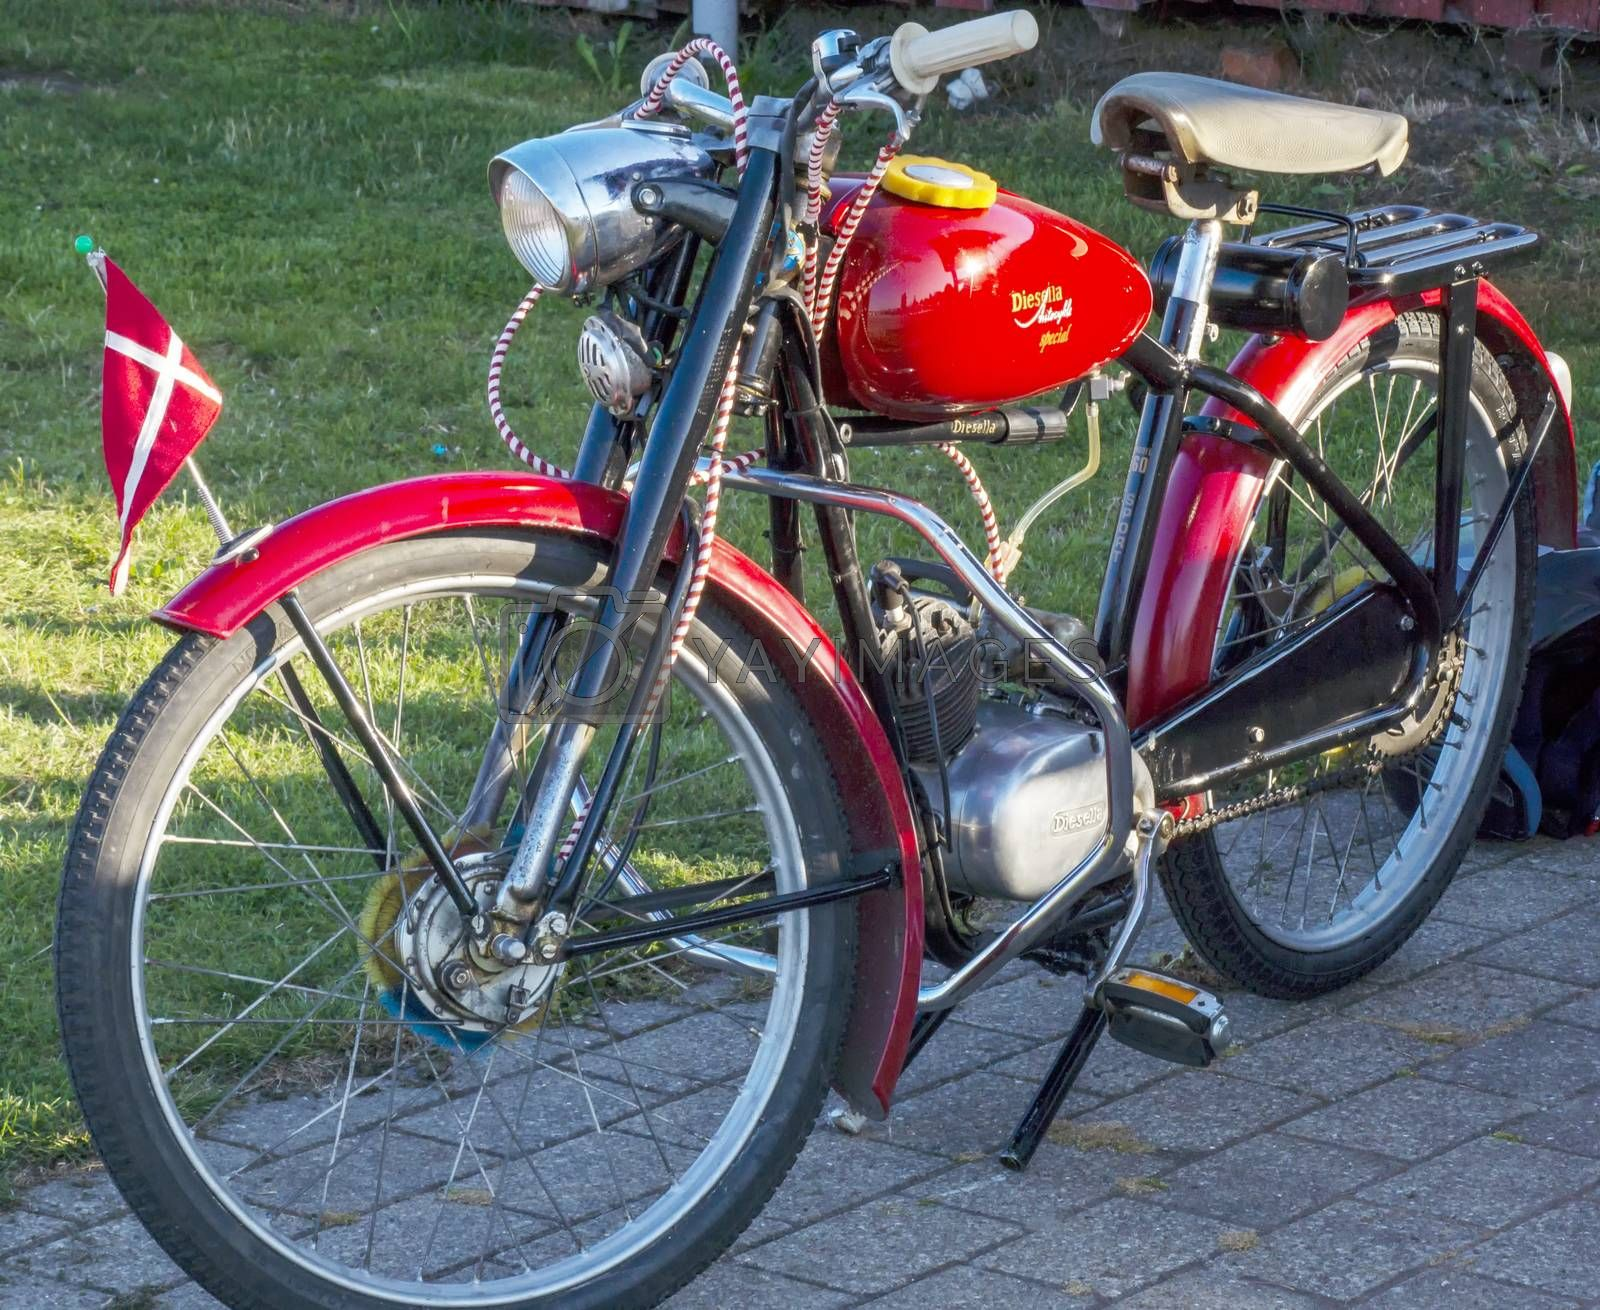 Royalty free image of Classic old motorcycle by Fr@nk